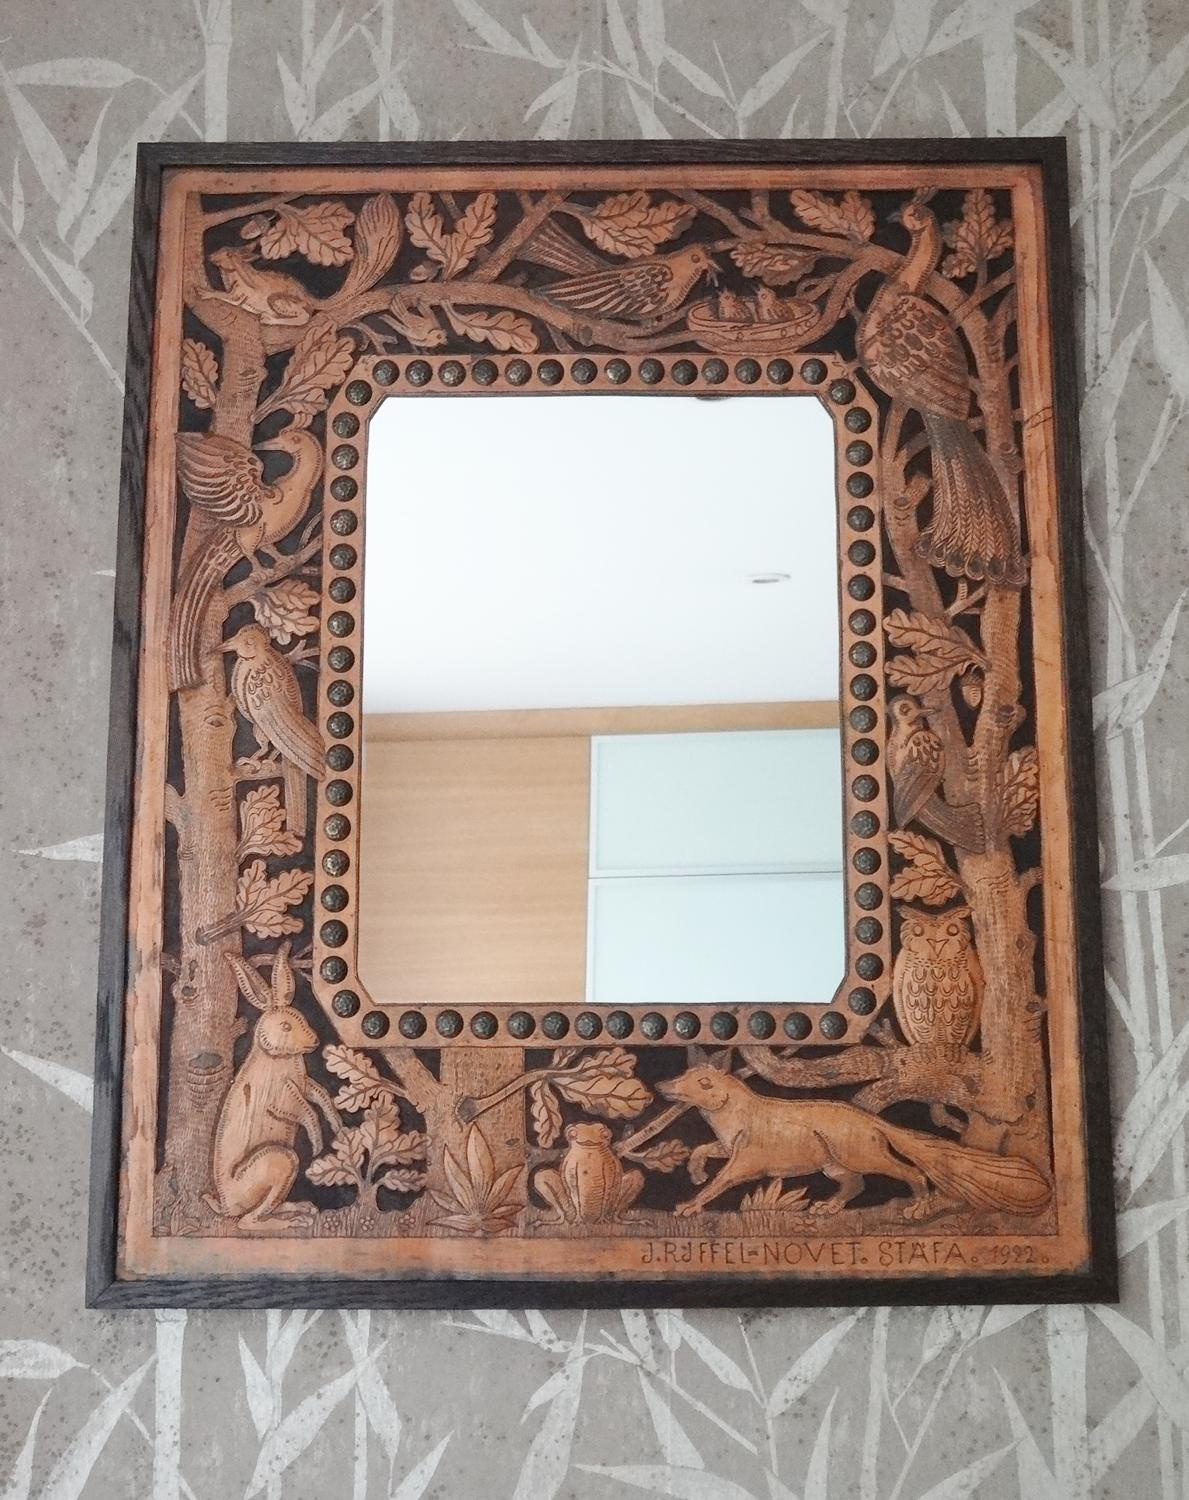 Unusual Cotswold School style Arts & Crafts copper mirror - picture 1 ...